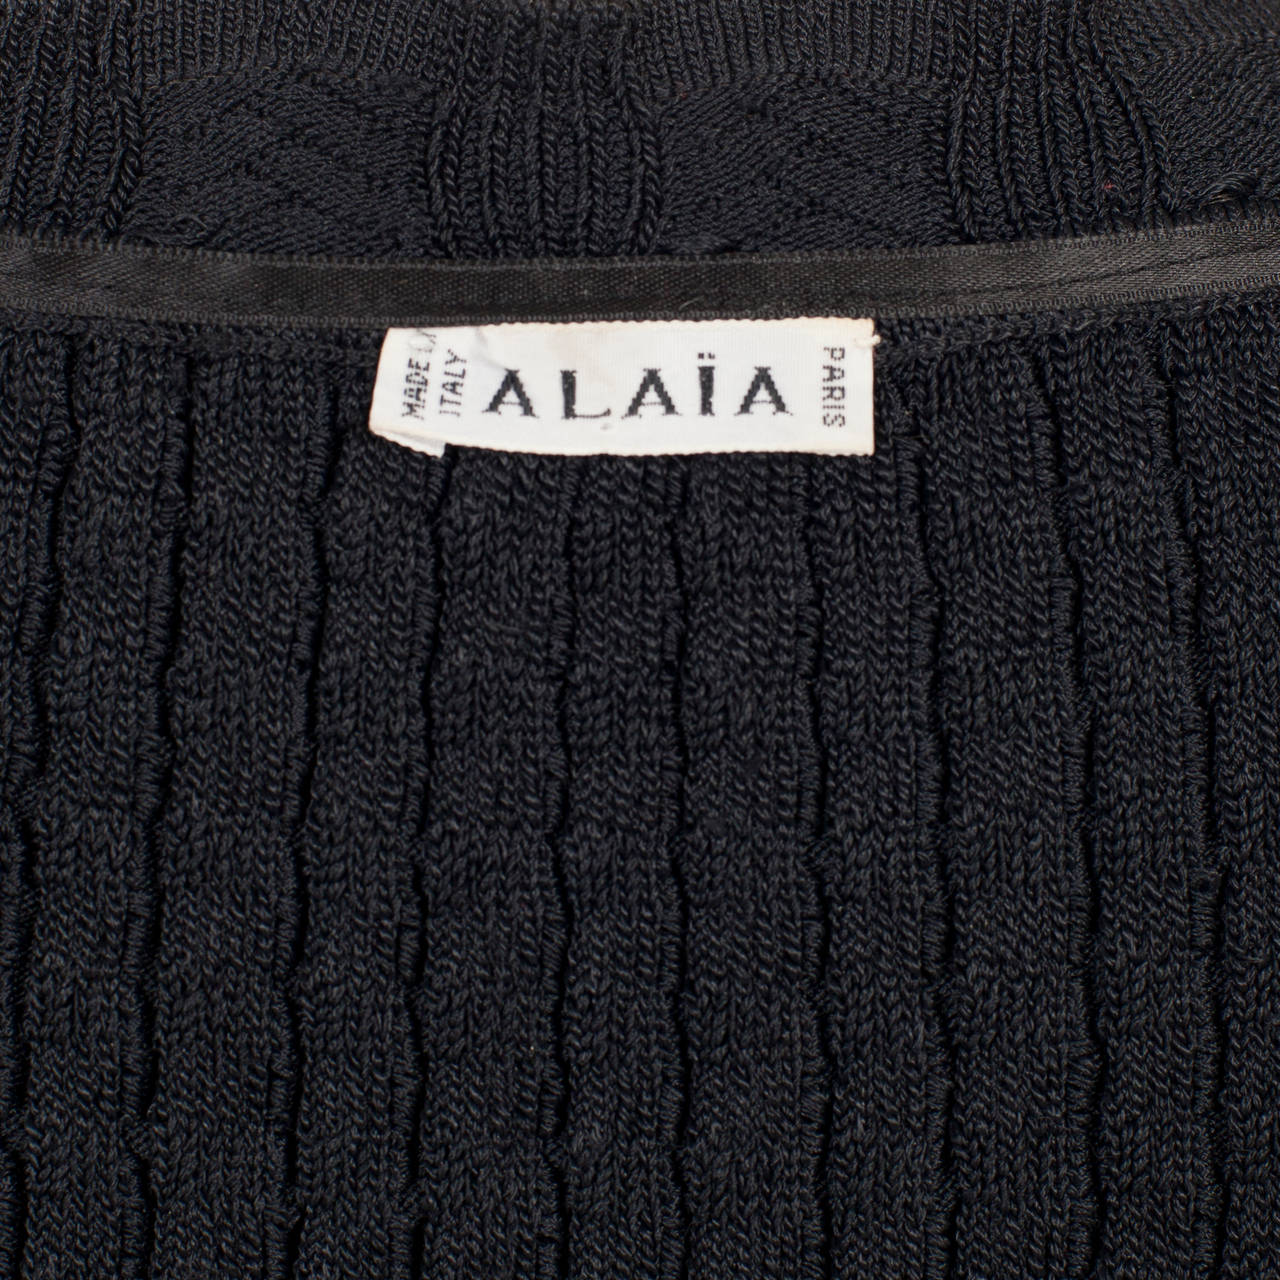 Alaia Black Knit Top Dress 1992 6